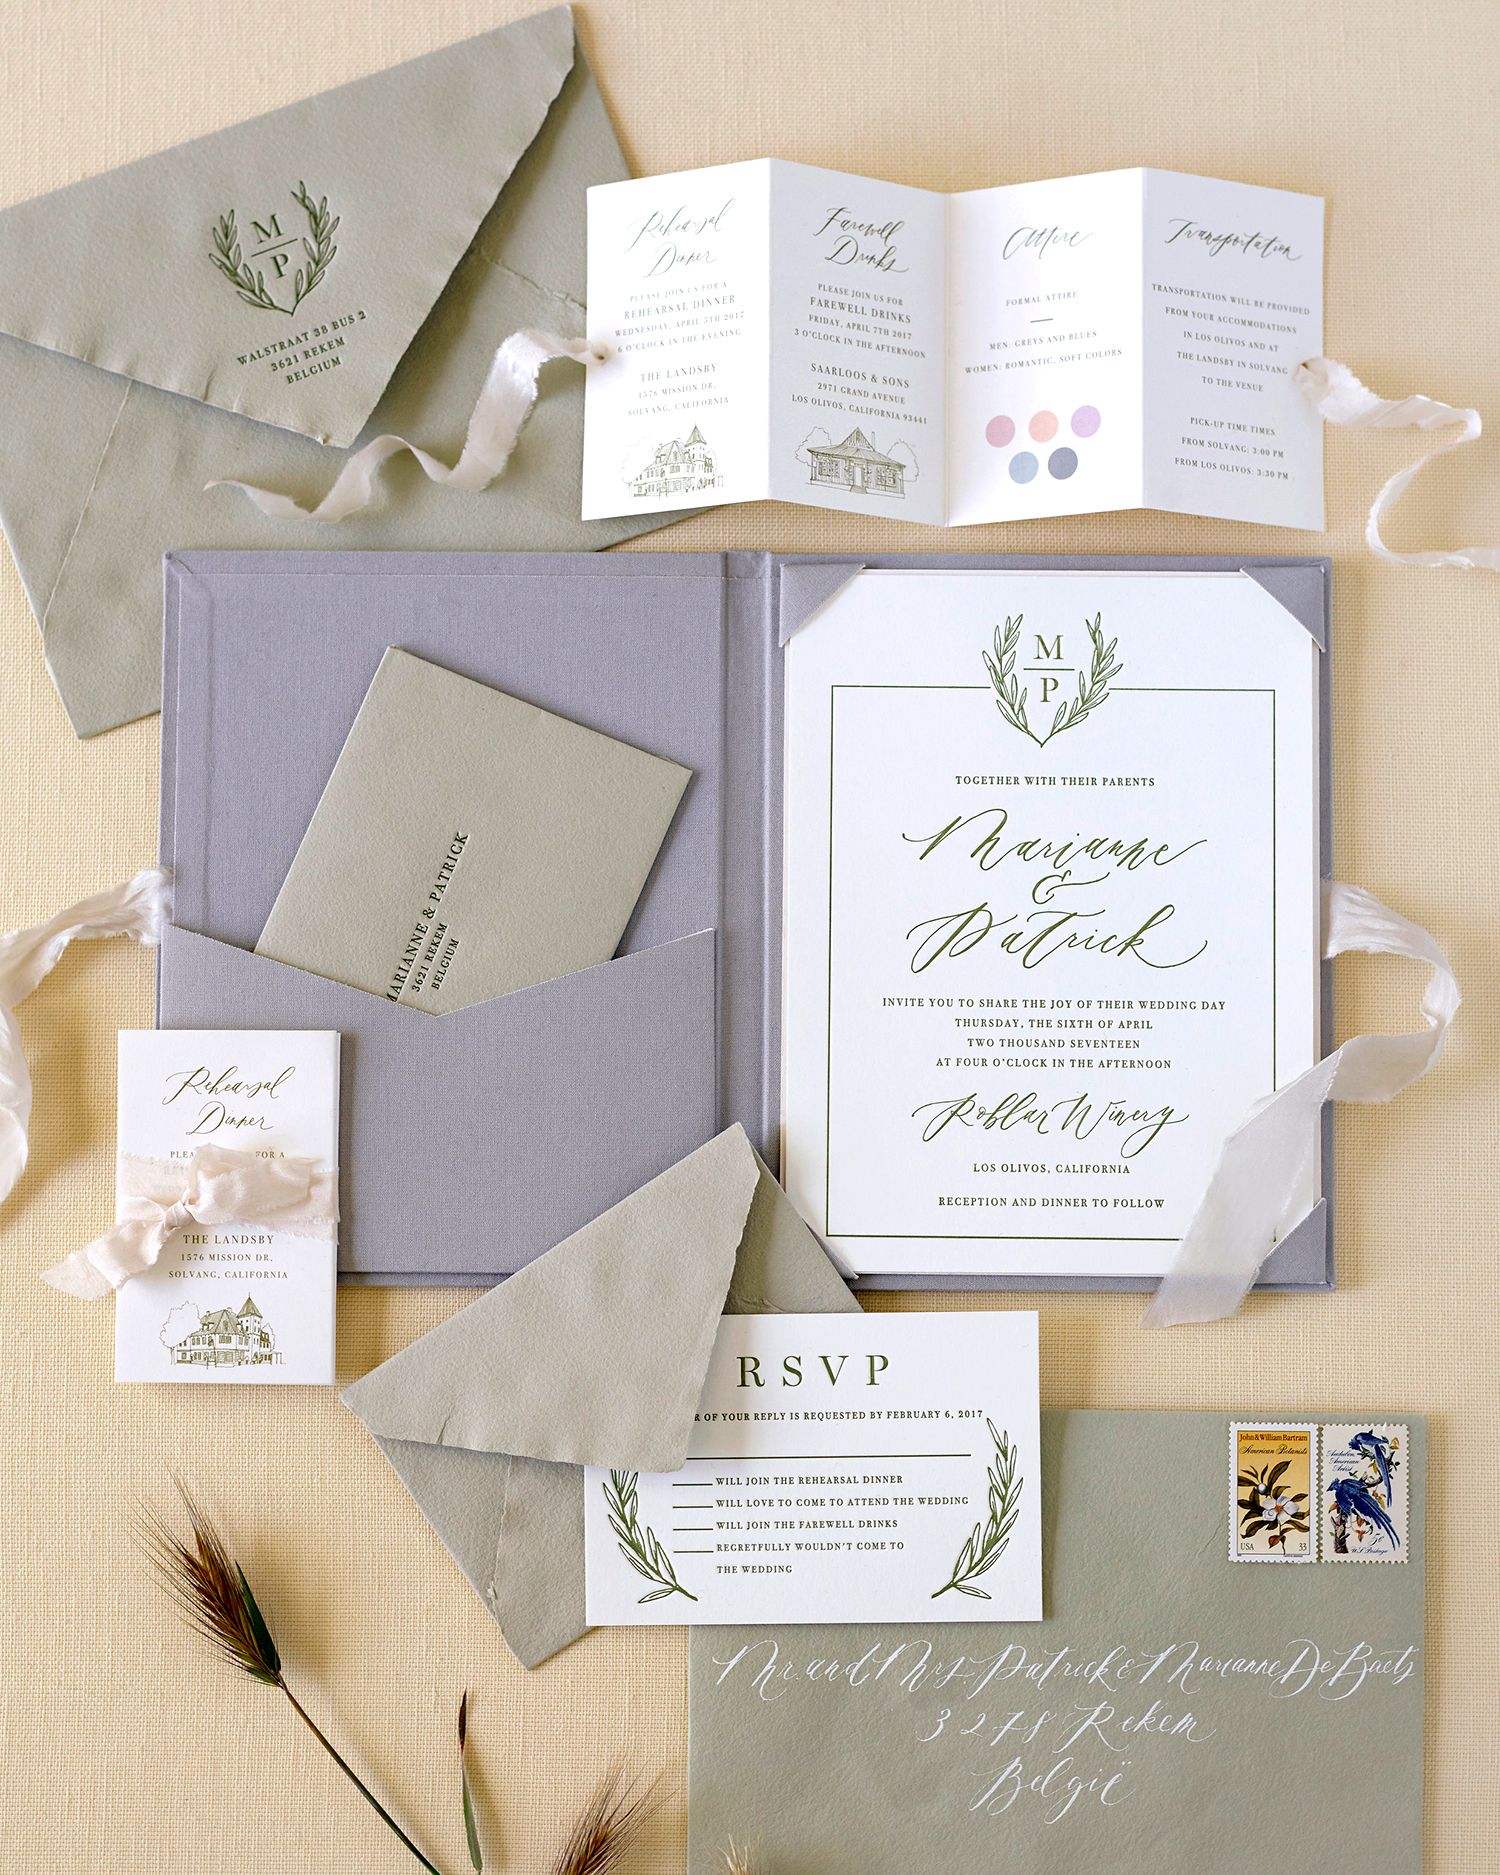 A Trend We're Loving: Booklet Wedding Invitations | Martha Stewart